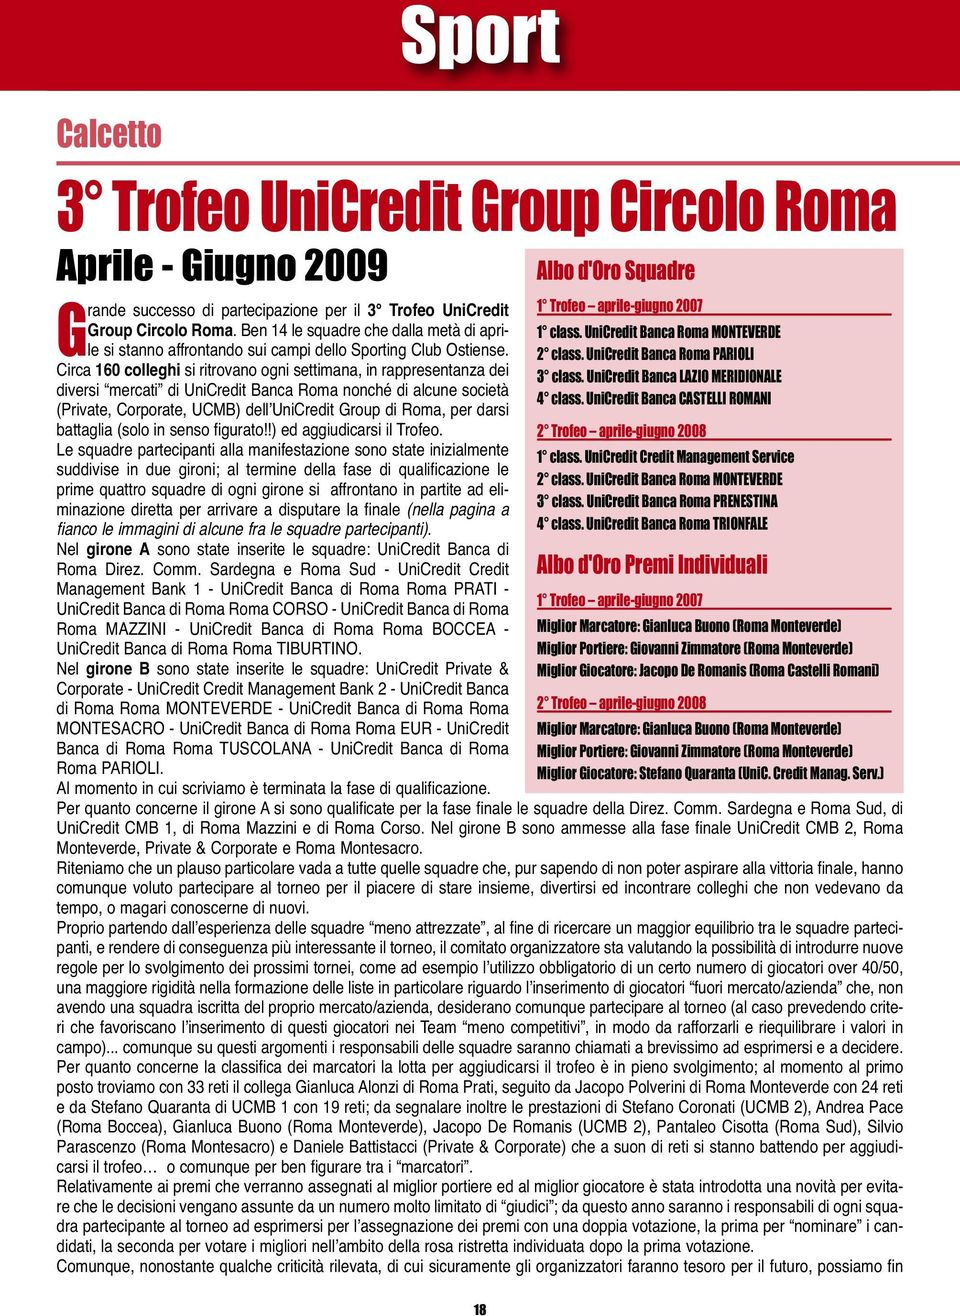 Circa 160 colleghi si ritrovano ogni settimana, in rappresentanza dei diversi mercati di UniCredit Banca Roma nonché di alcune società (Private, Corporate, UCMB) dell'unicredit Group di Roma, per